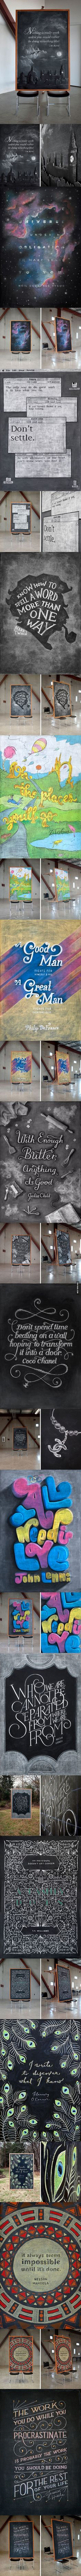 Every Week, Two Anonymous Students Create Stunning Chalkboard Art With Famous Quotes.